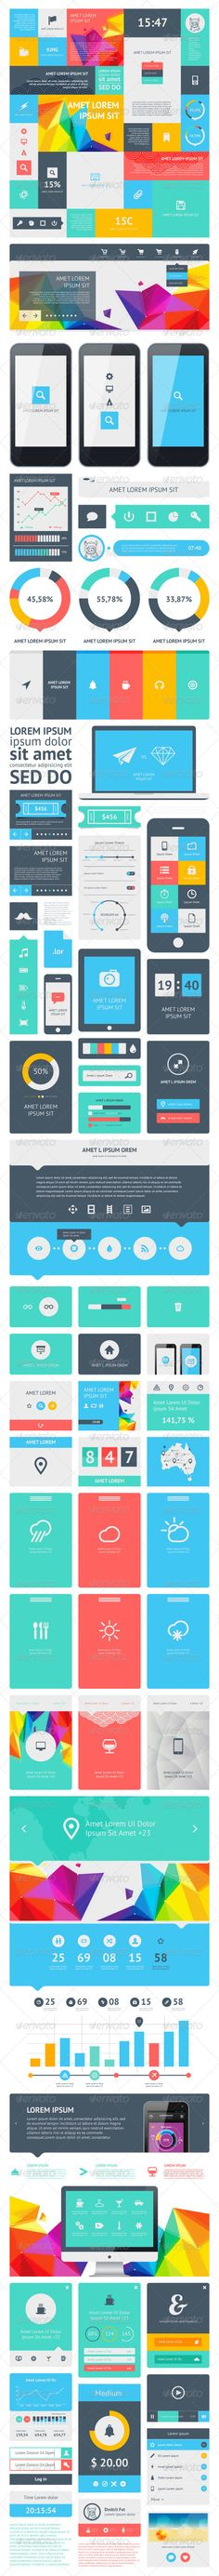 Vectors - UI Set Components Featuring Flat Design | GraphicRiver